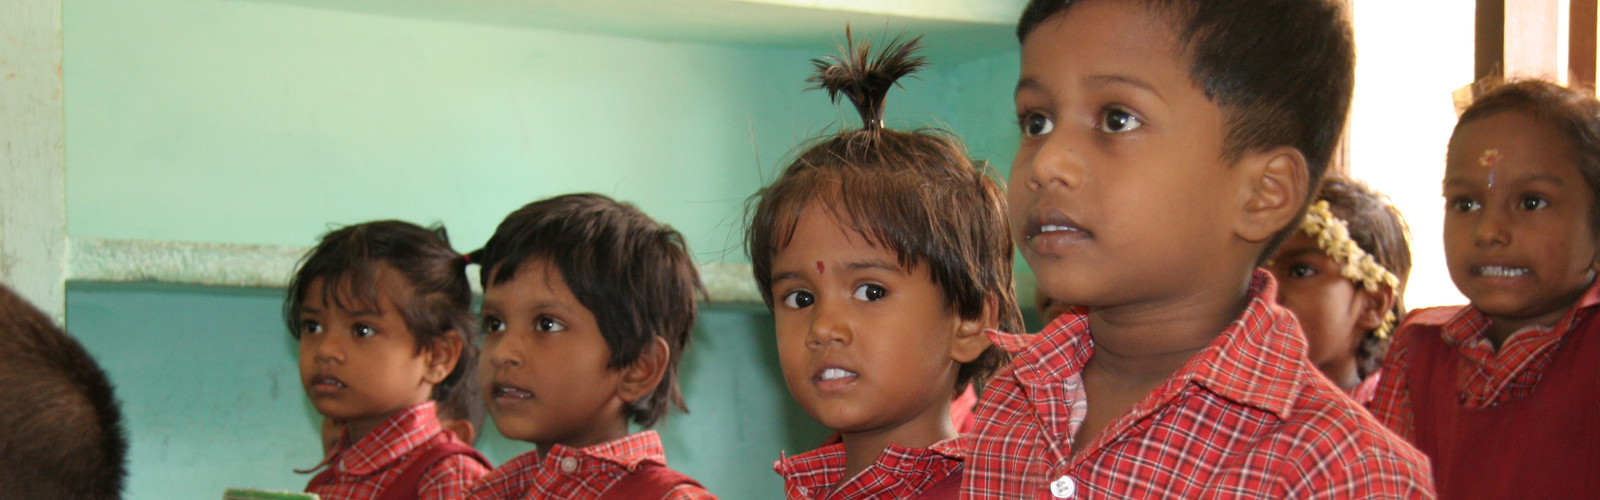 Initiative Transparente Zivilgesellschaft Tsunami Indien Kinder